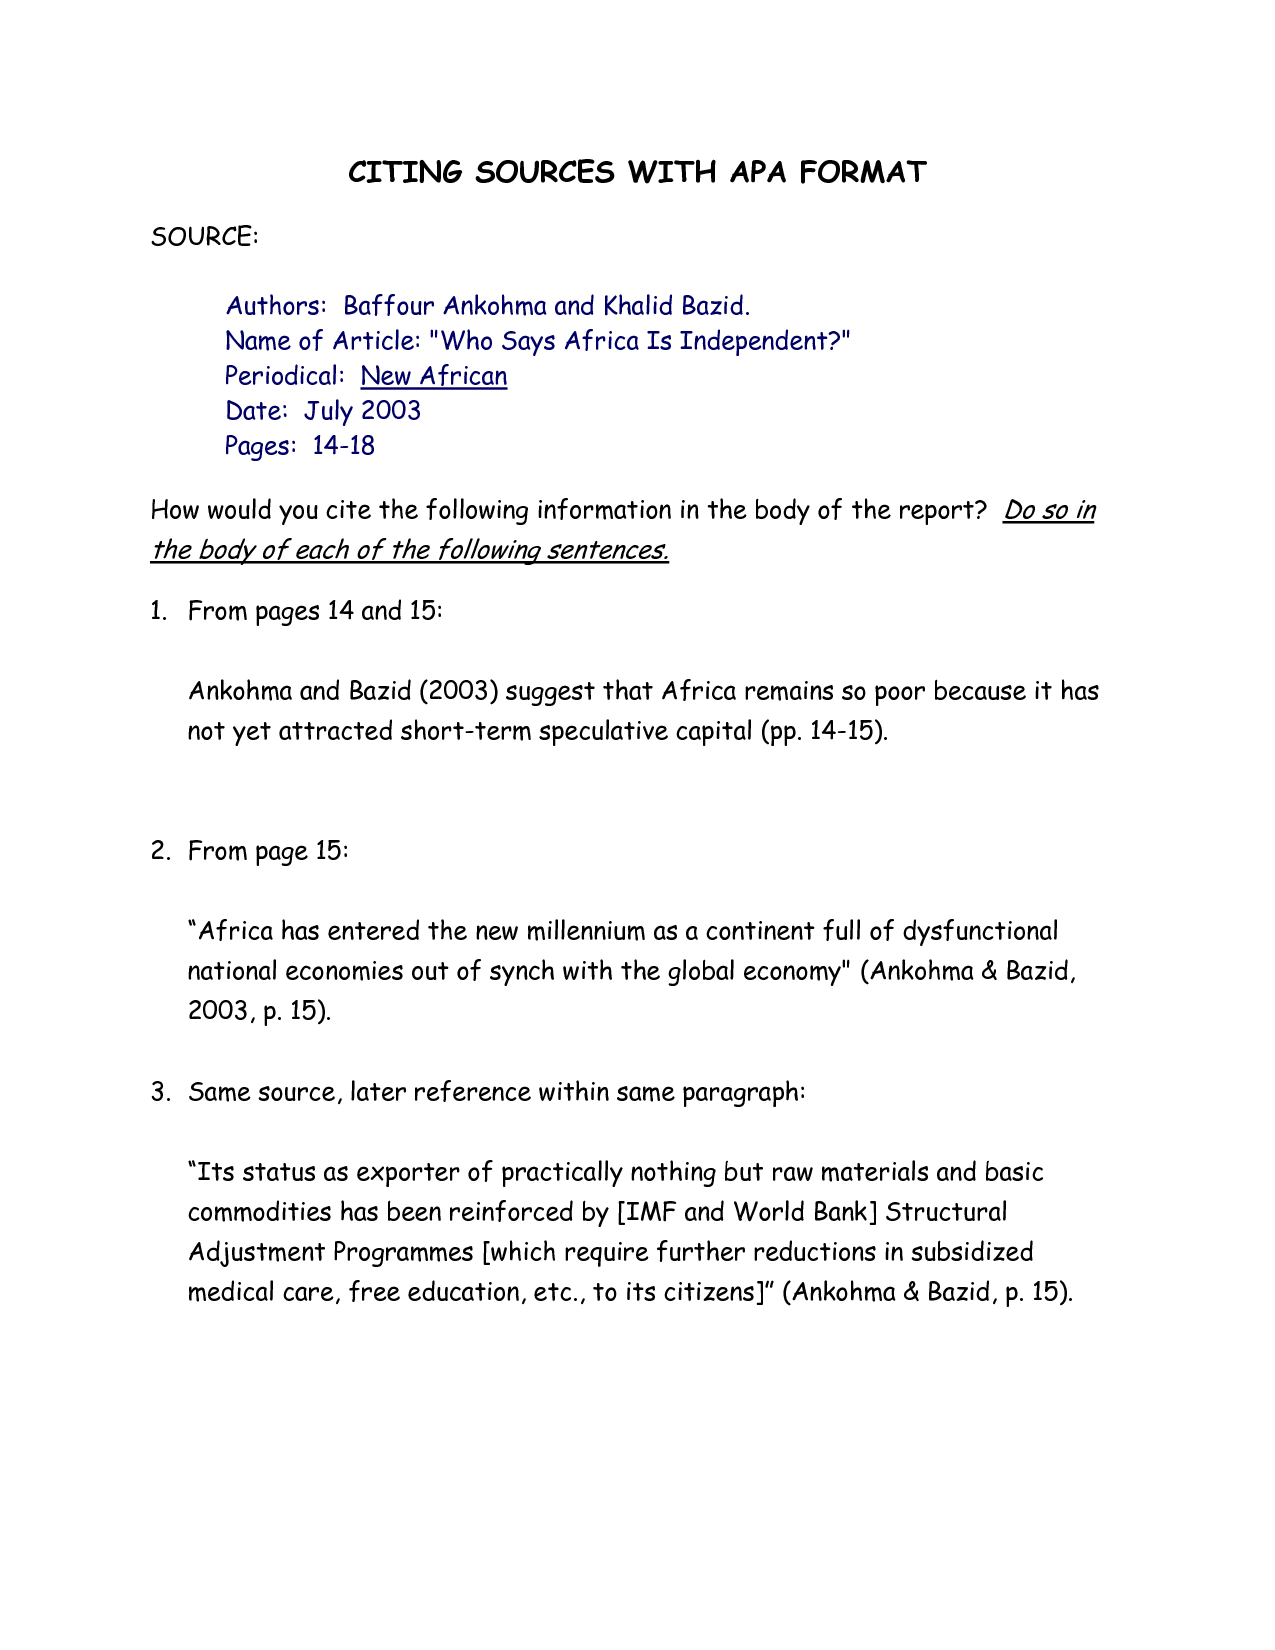 012 Citing Sources Apa Format Example 309734 Essay In Phenomenal An Argumentative Expository College Full